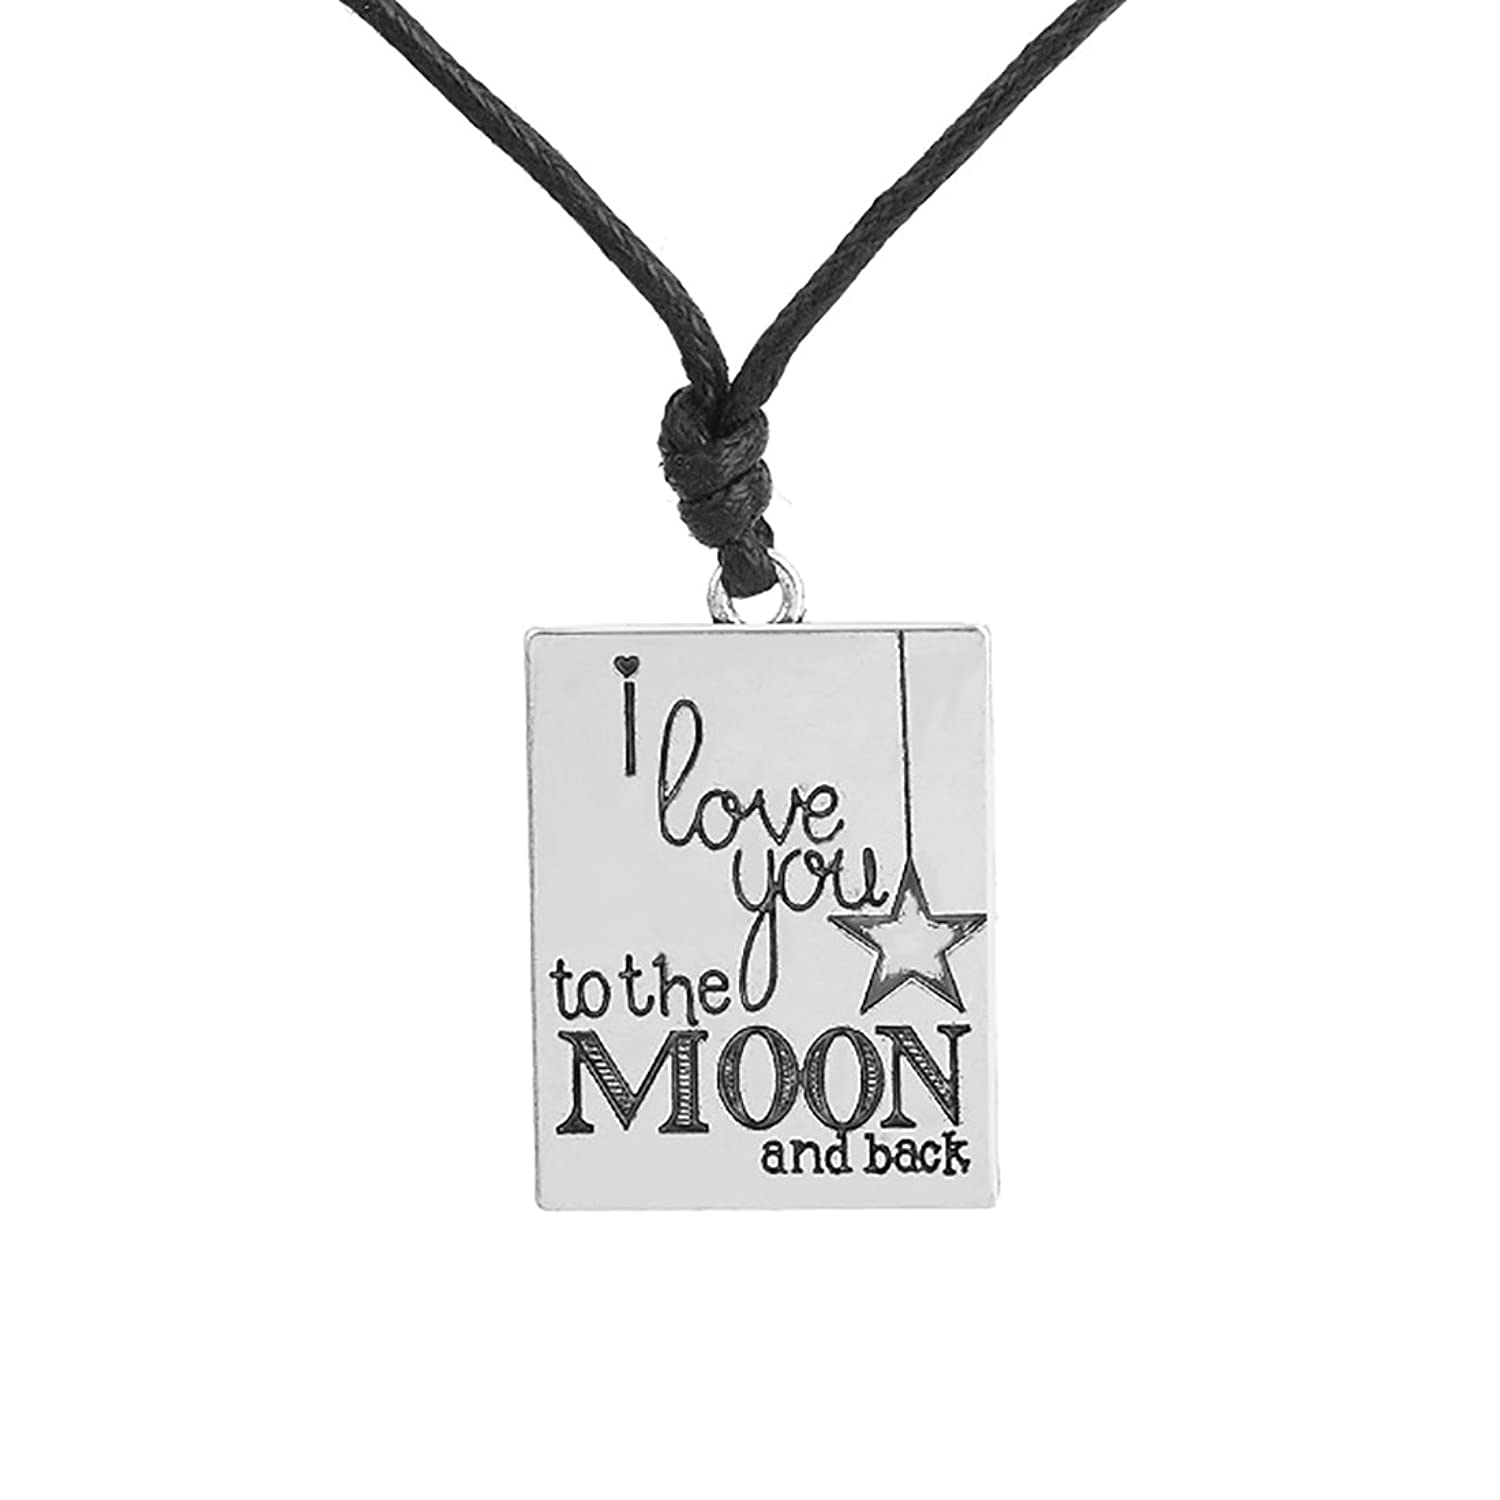 "Fashion New-Designed Necklace with 'I love you to the moom and back"" Words and Star Symbols Jewelry"